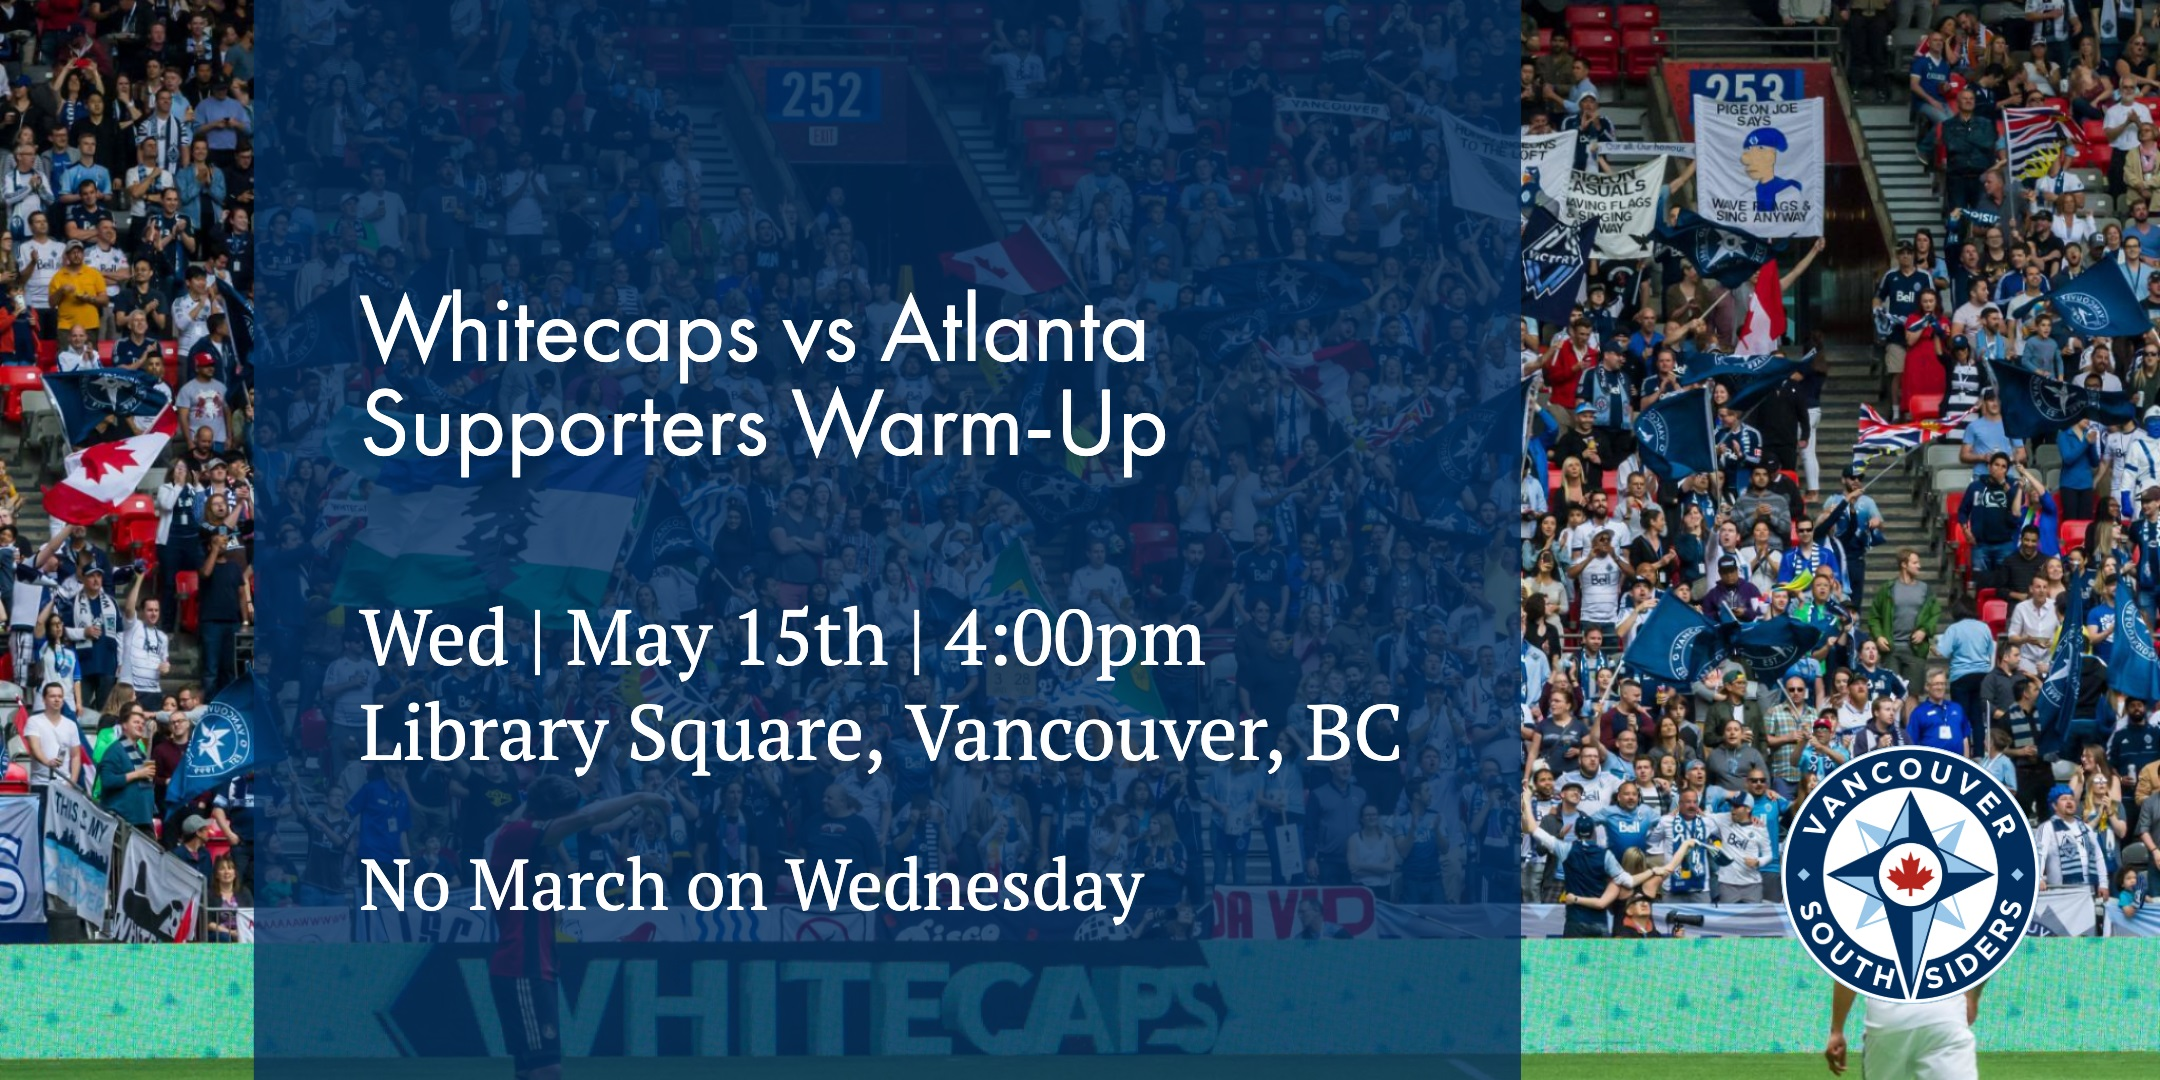 Whitecaps vs Atlanta, Wednesday, May 15th